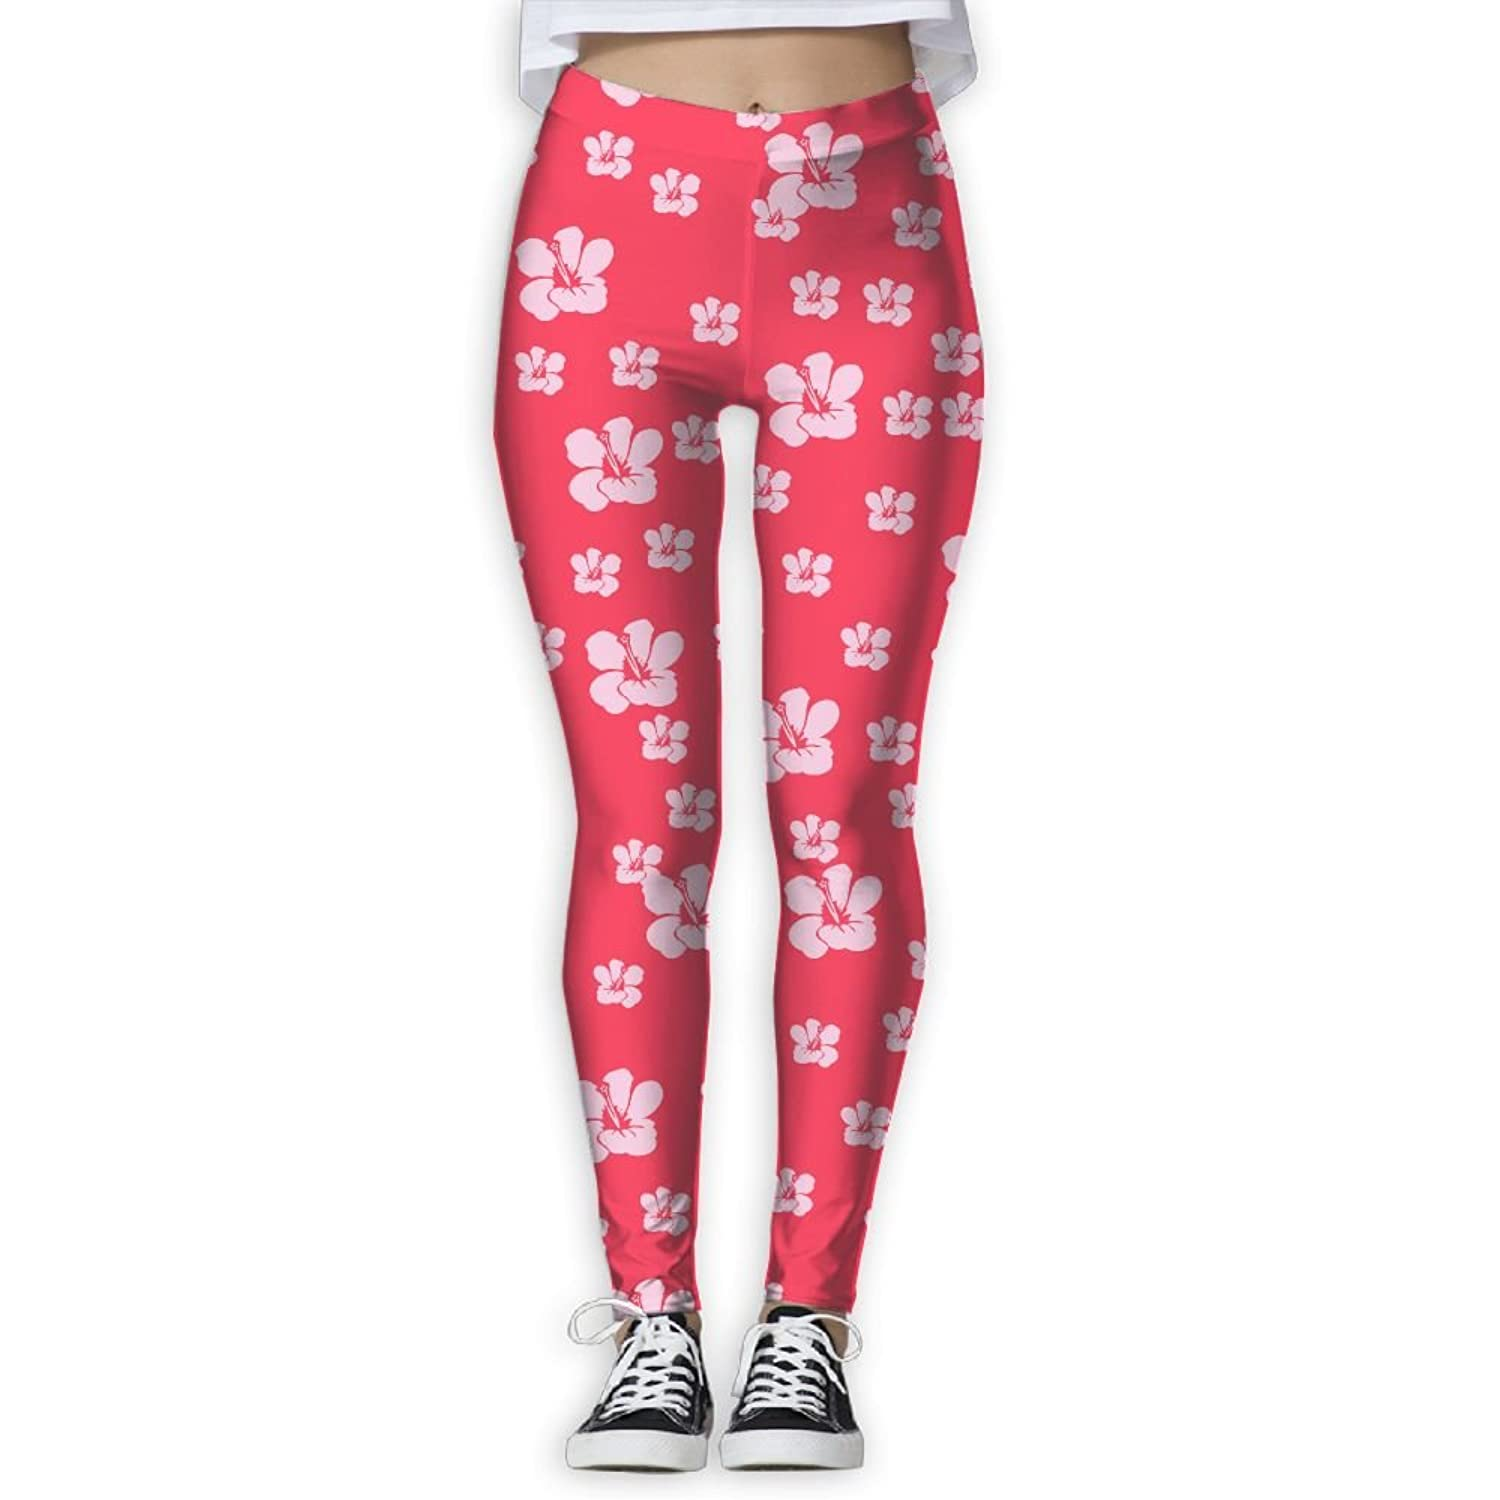 Red Hawaiian Flowers Printed Yoga Athletic Pants Best Choice For